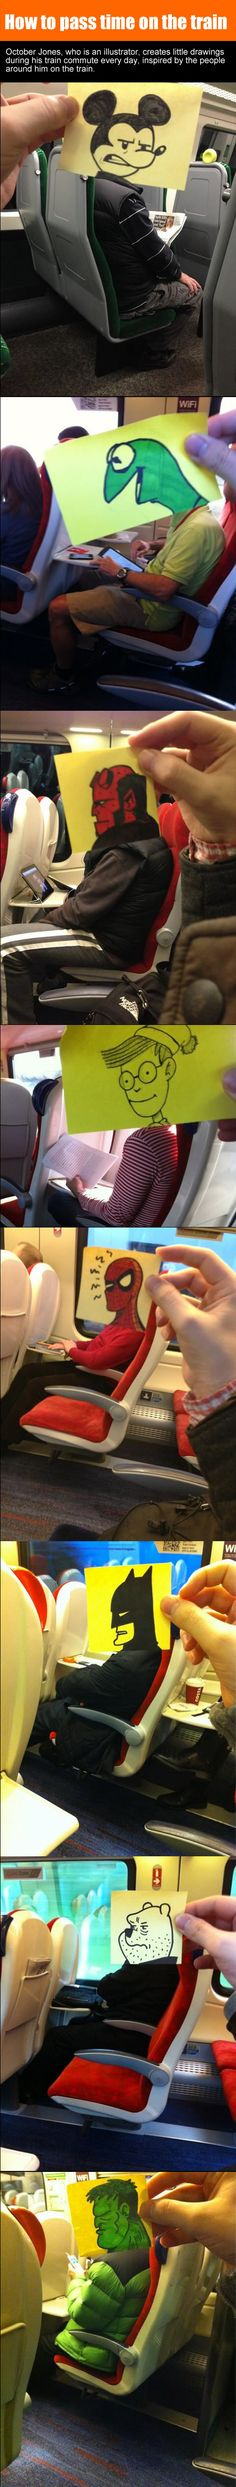 buses, artists, airplanes, funny pictures, funny images, train, pass time, hellboy funny, awesom